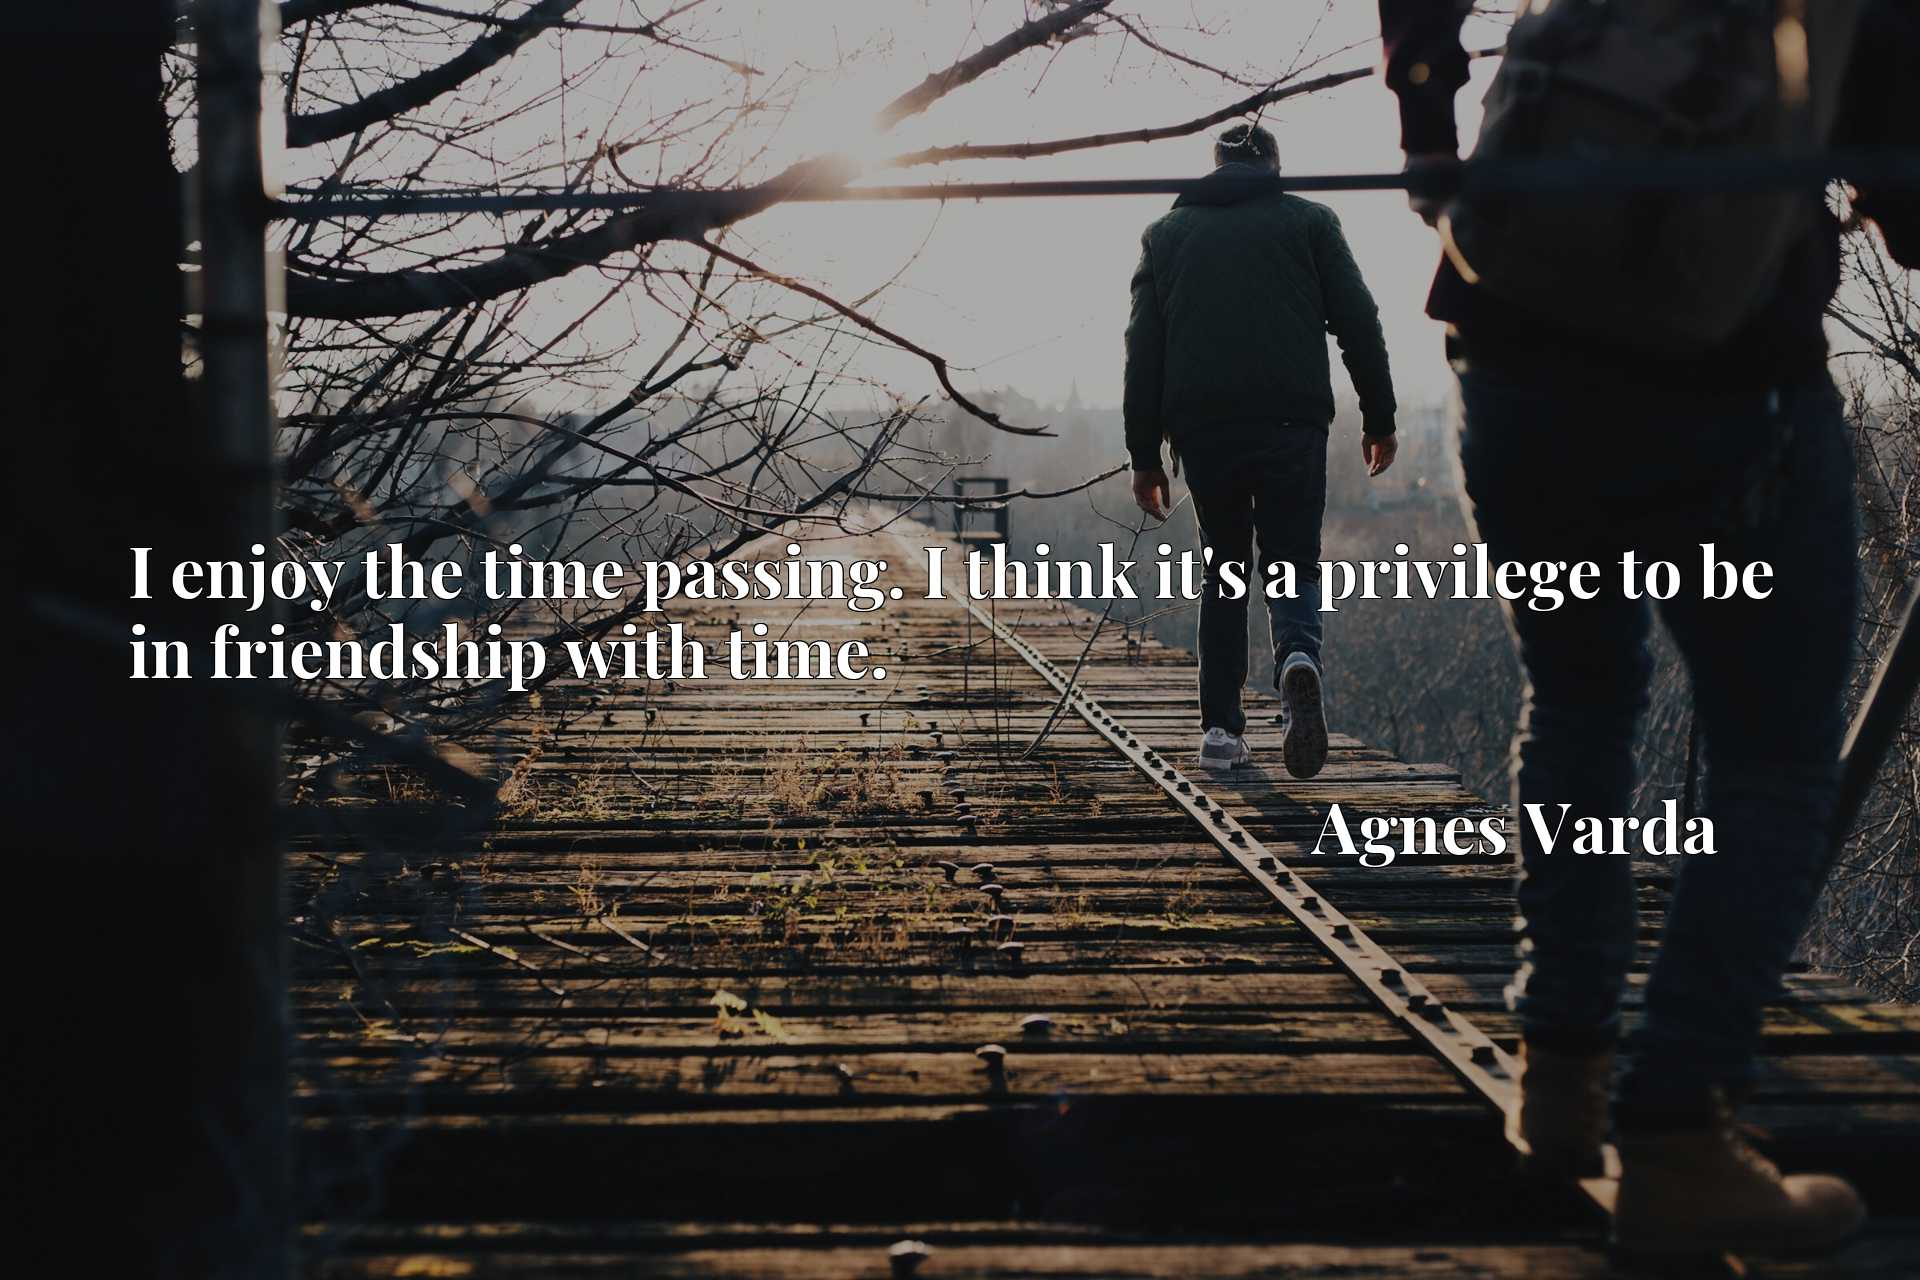 I enjoy the time passing. I think it's a privilege to be in friendship with time.